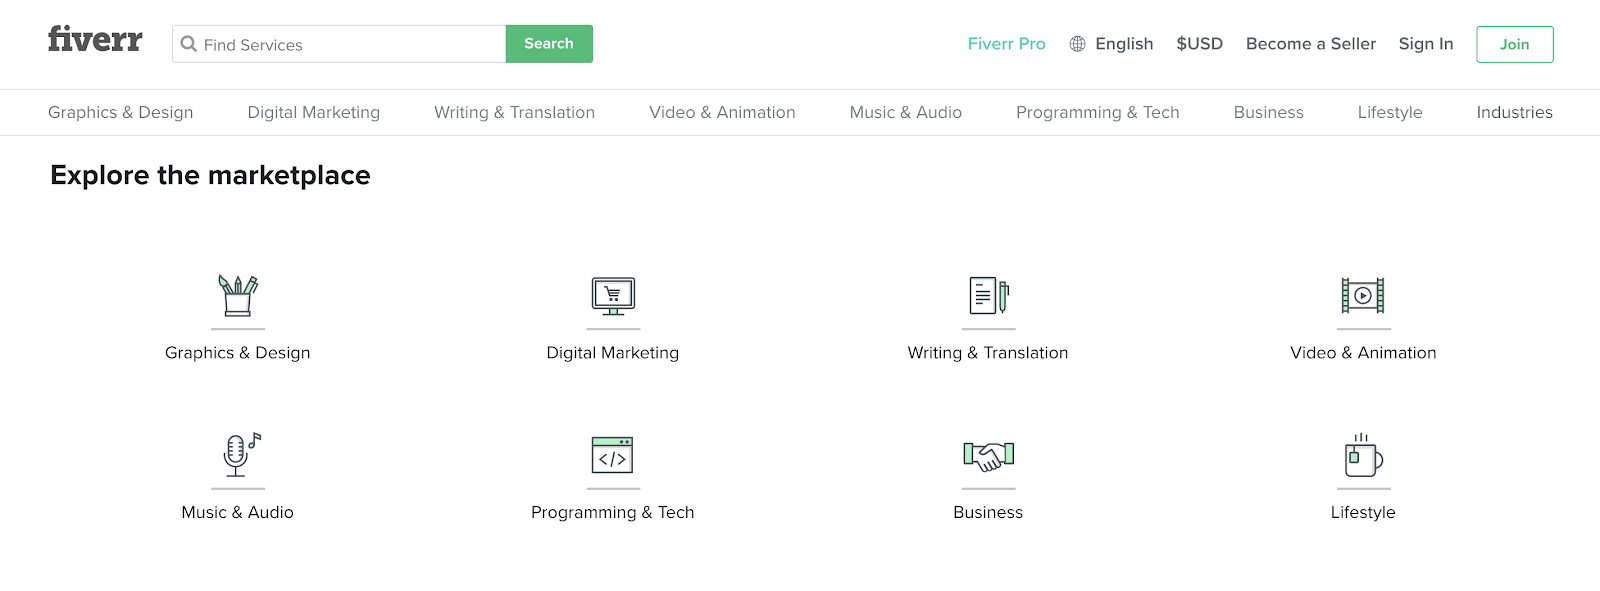 Job site Fiverr offers more than just remote gigs